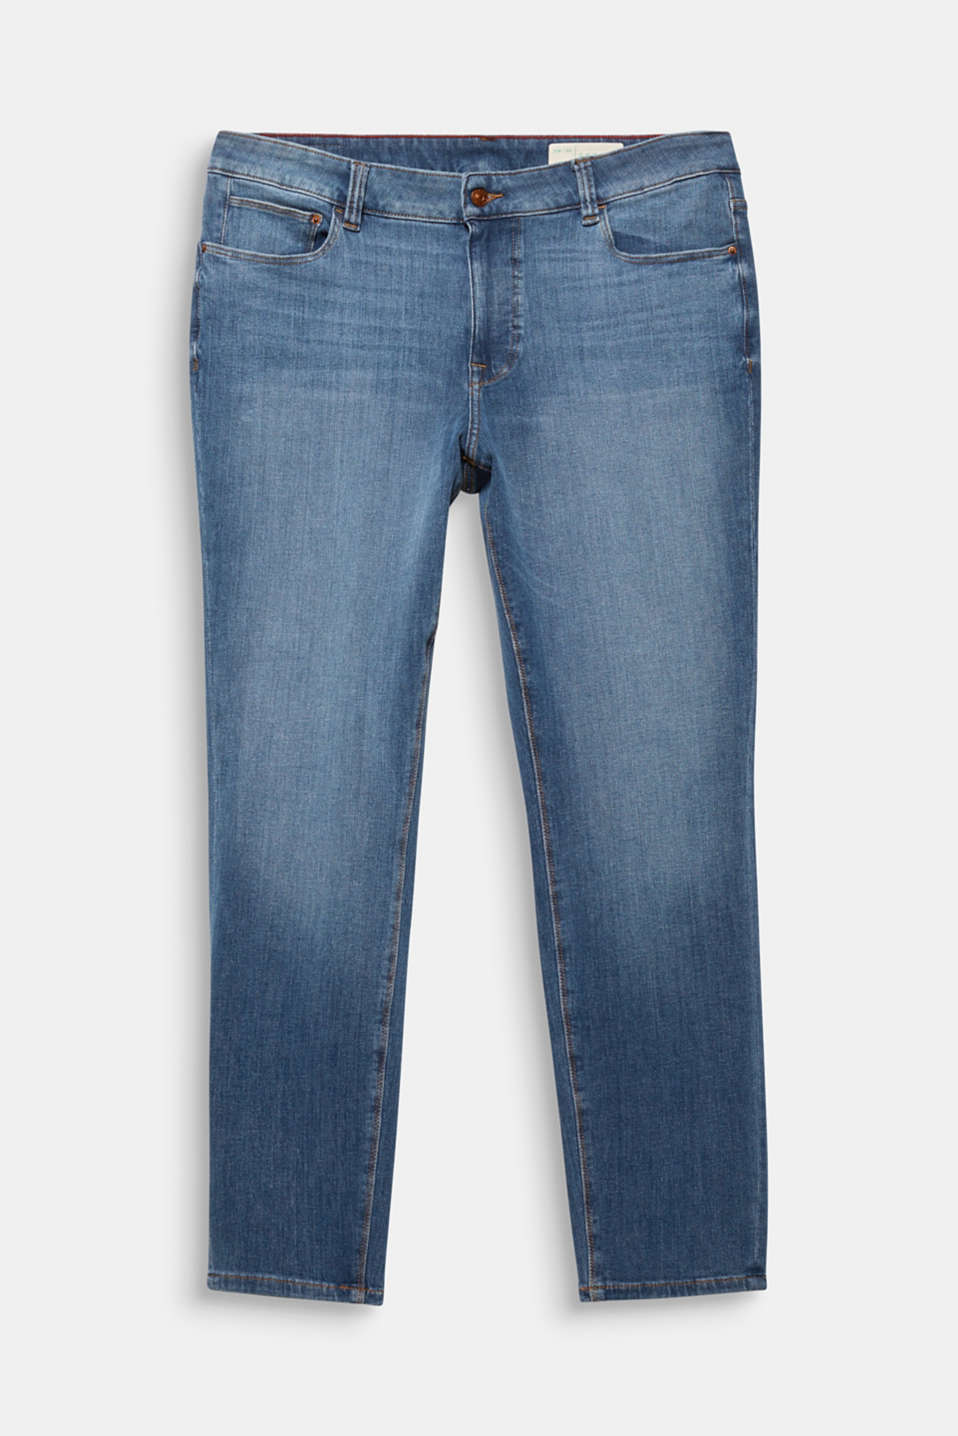 CURVY skinny two-way stretch jeans, BLUE MEDIUM WASH, detail image number 7